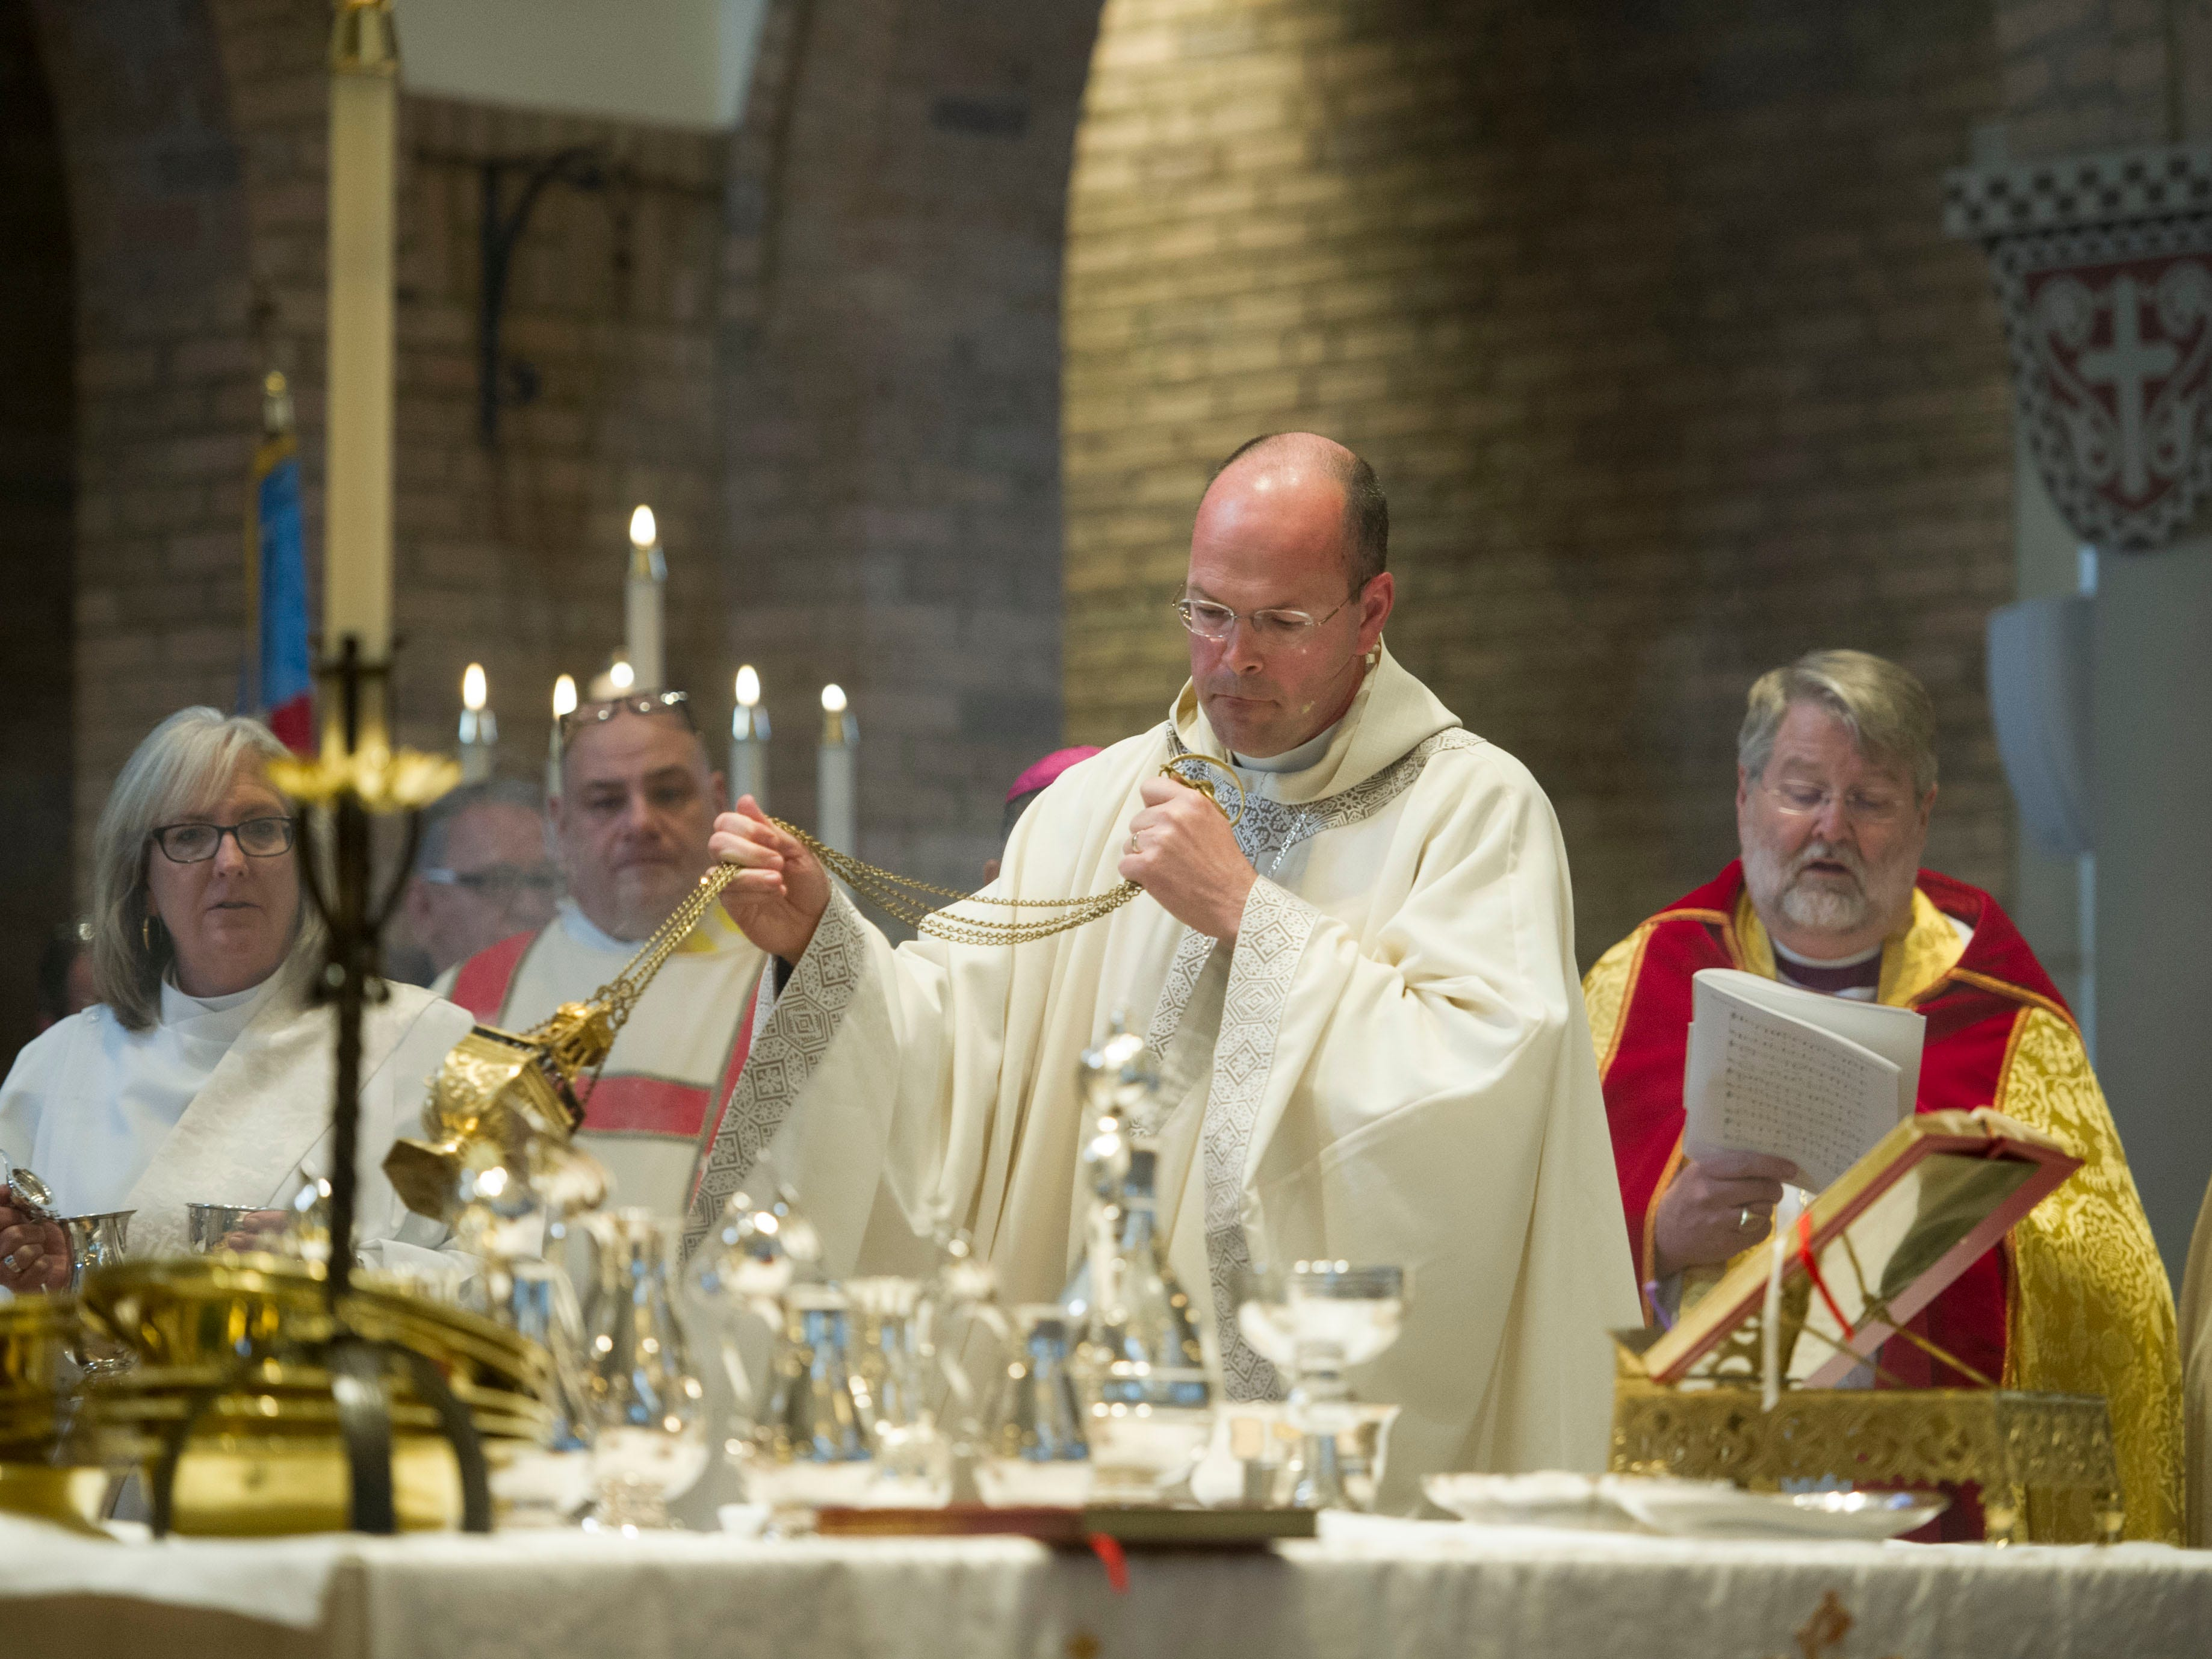 Gay clergy in the episcopal church